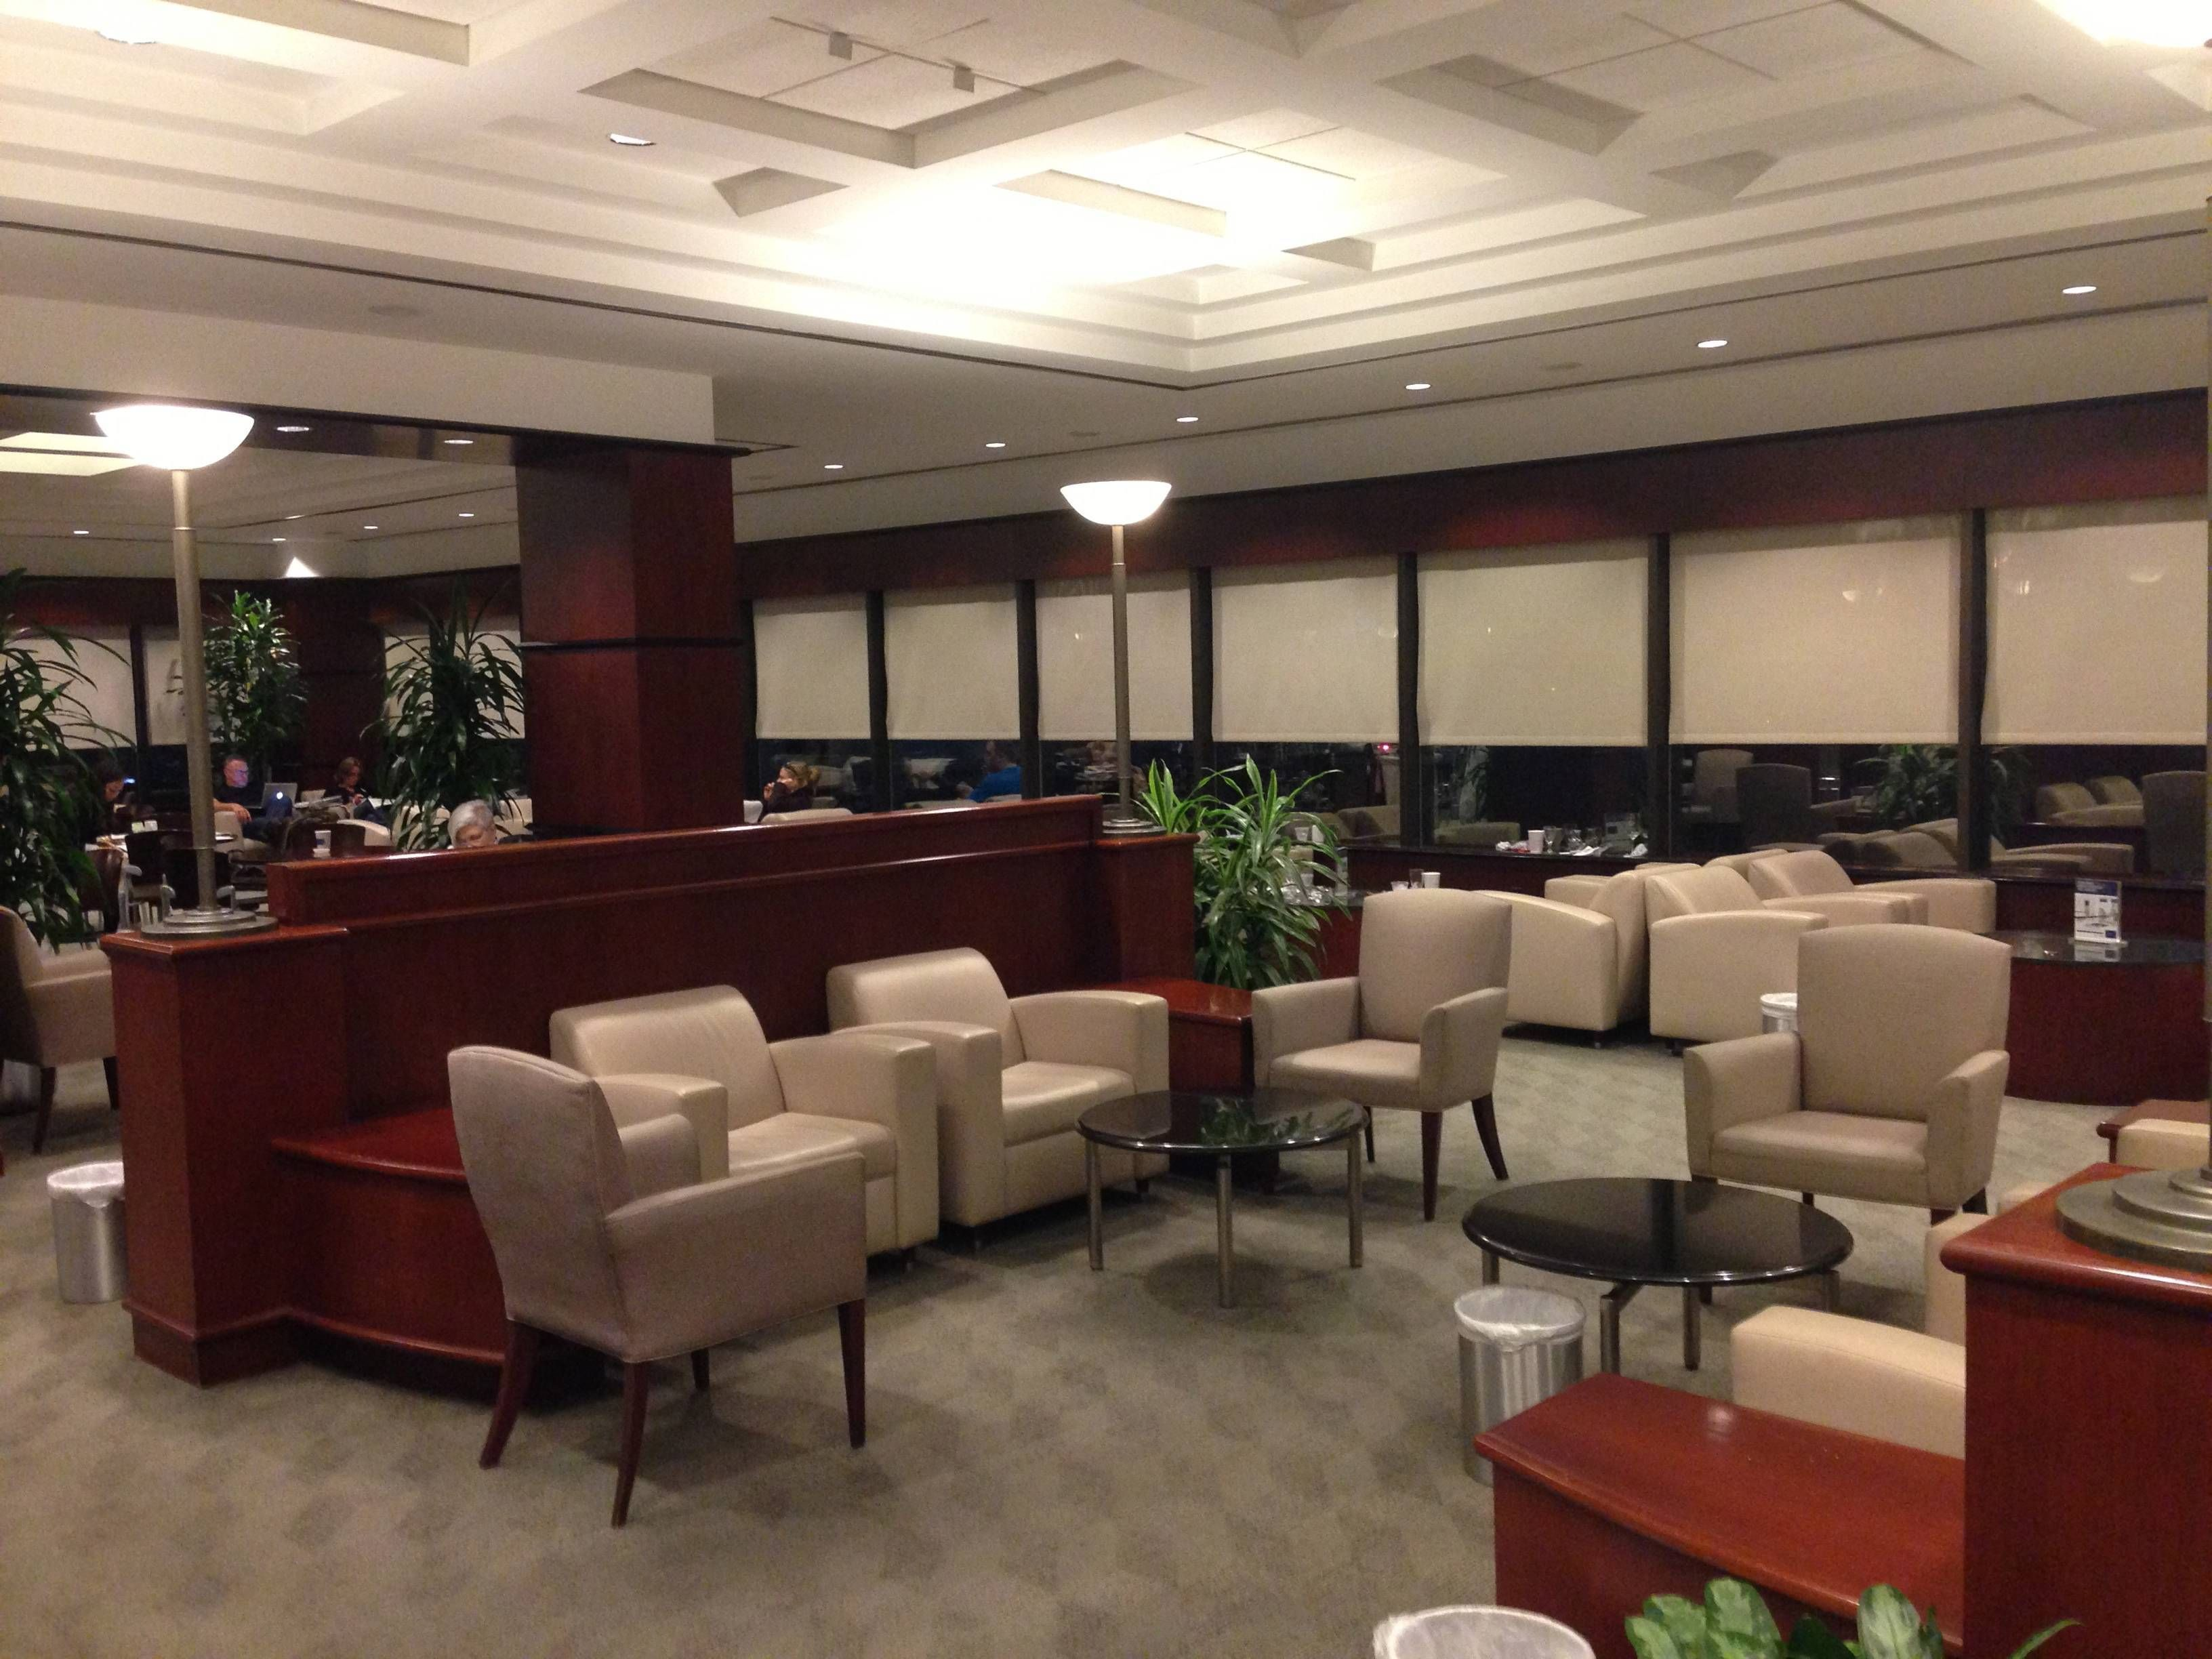 Sala VIP United Club - Aeroporto de Houston (IAH)